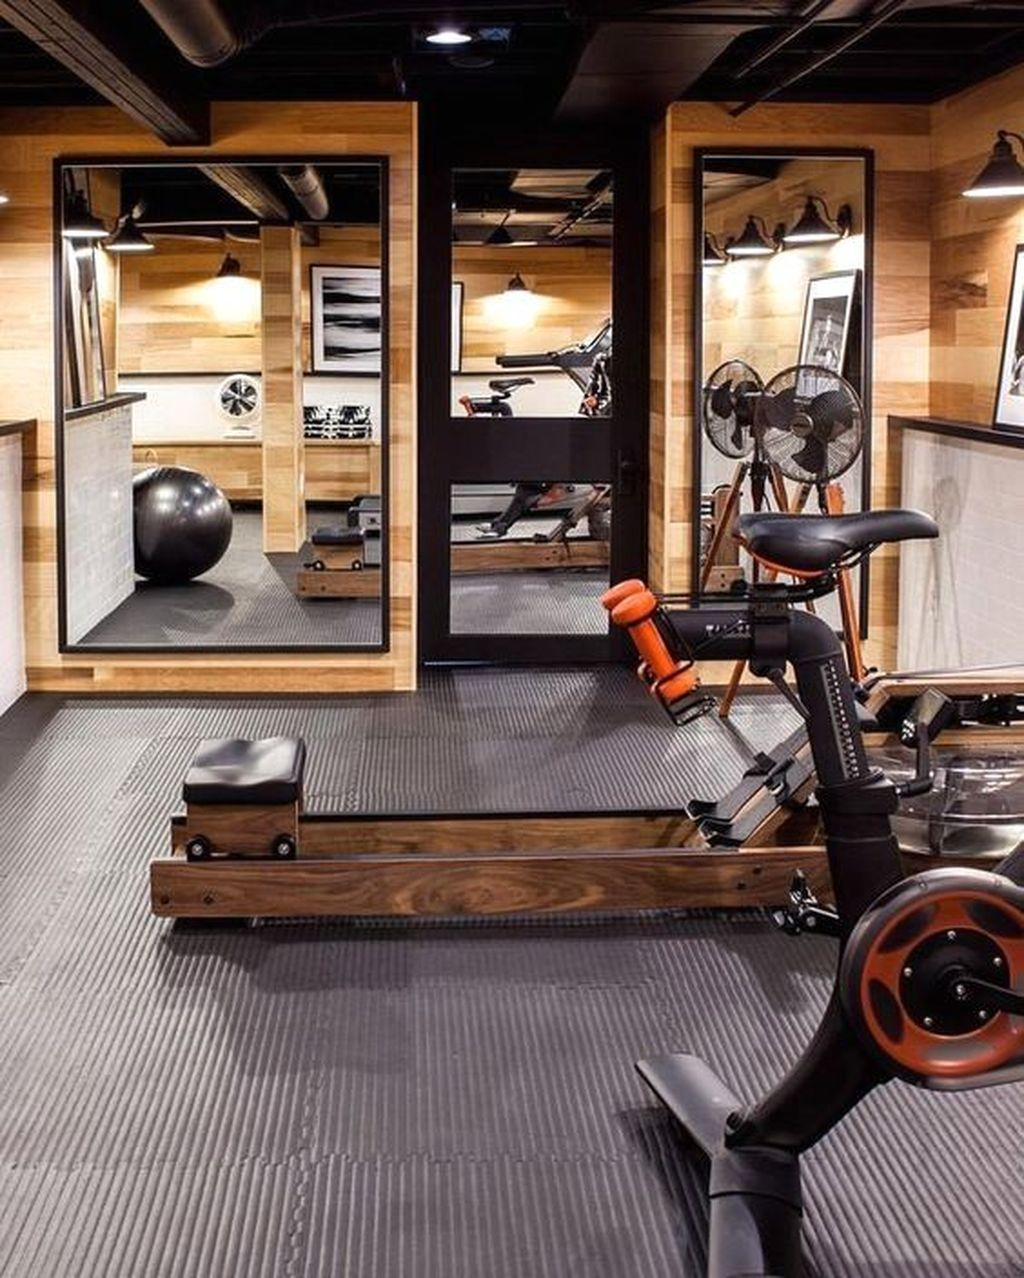 20+ Outstanding Home Gym Room Design Ideas For Inspiration